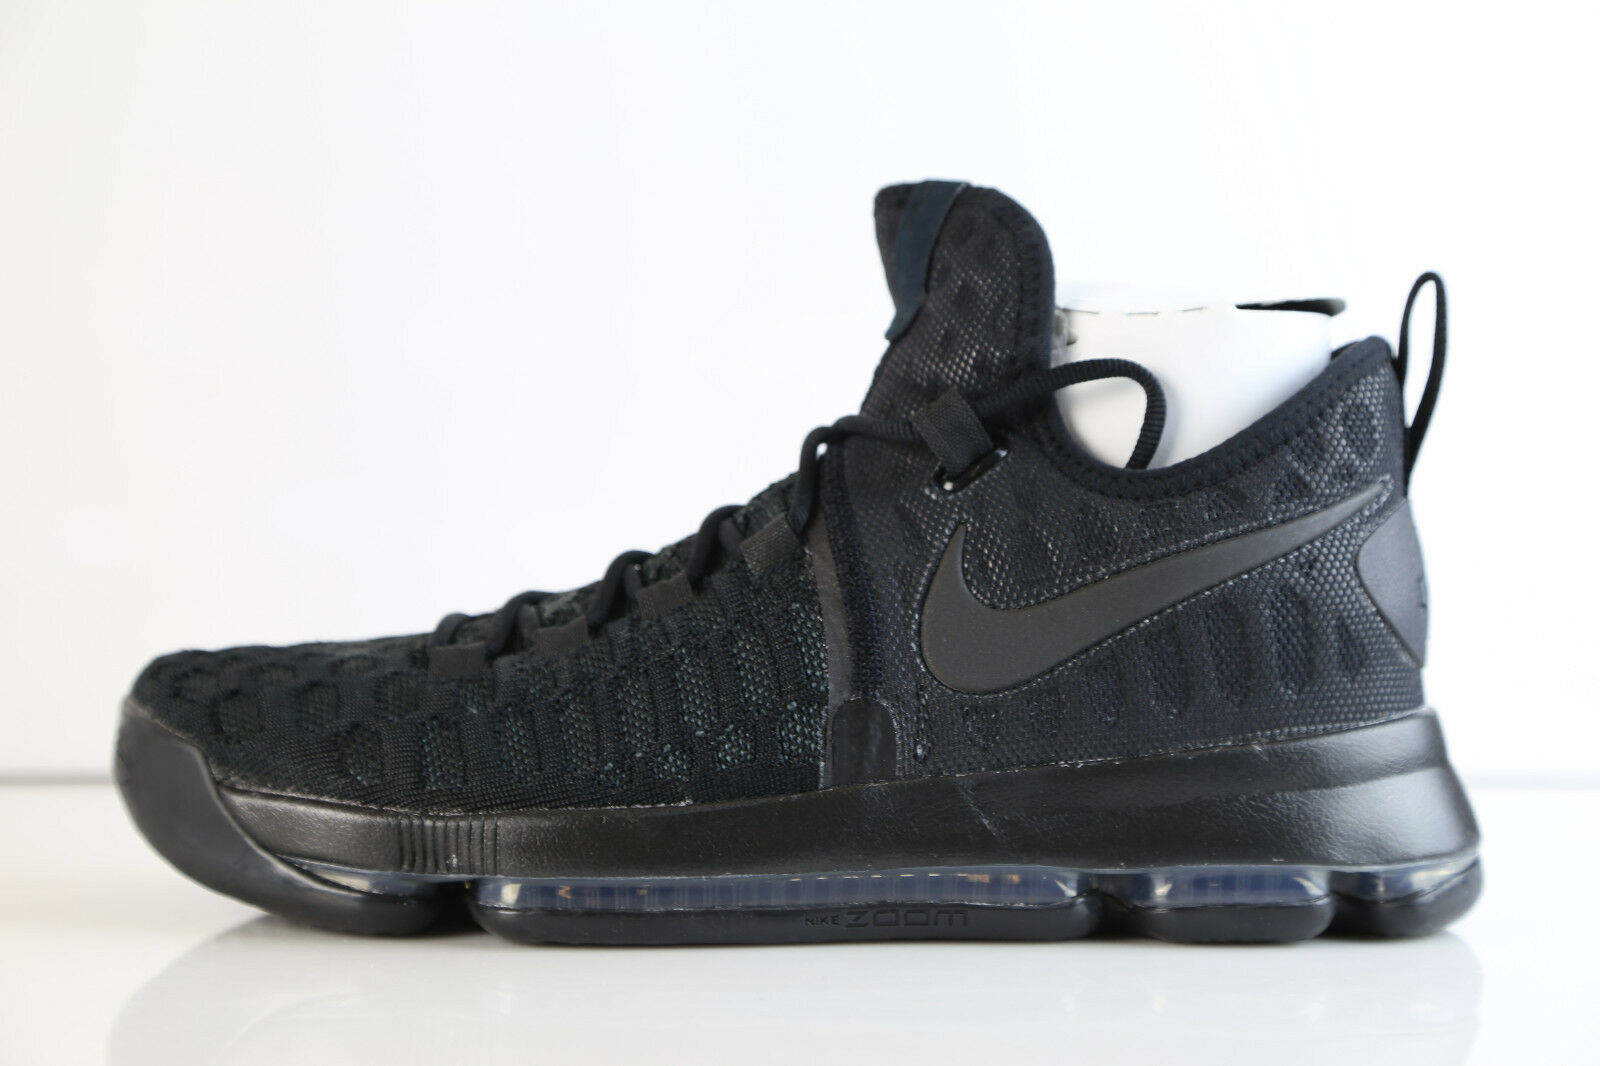 Nike Zoom KD 10 9 noir Anthracite 843392-001 10 KD 1 9 flyknit air 845112